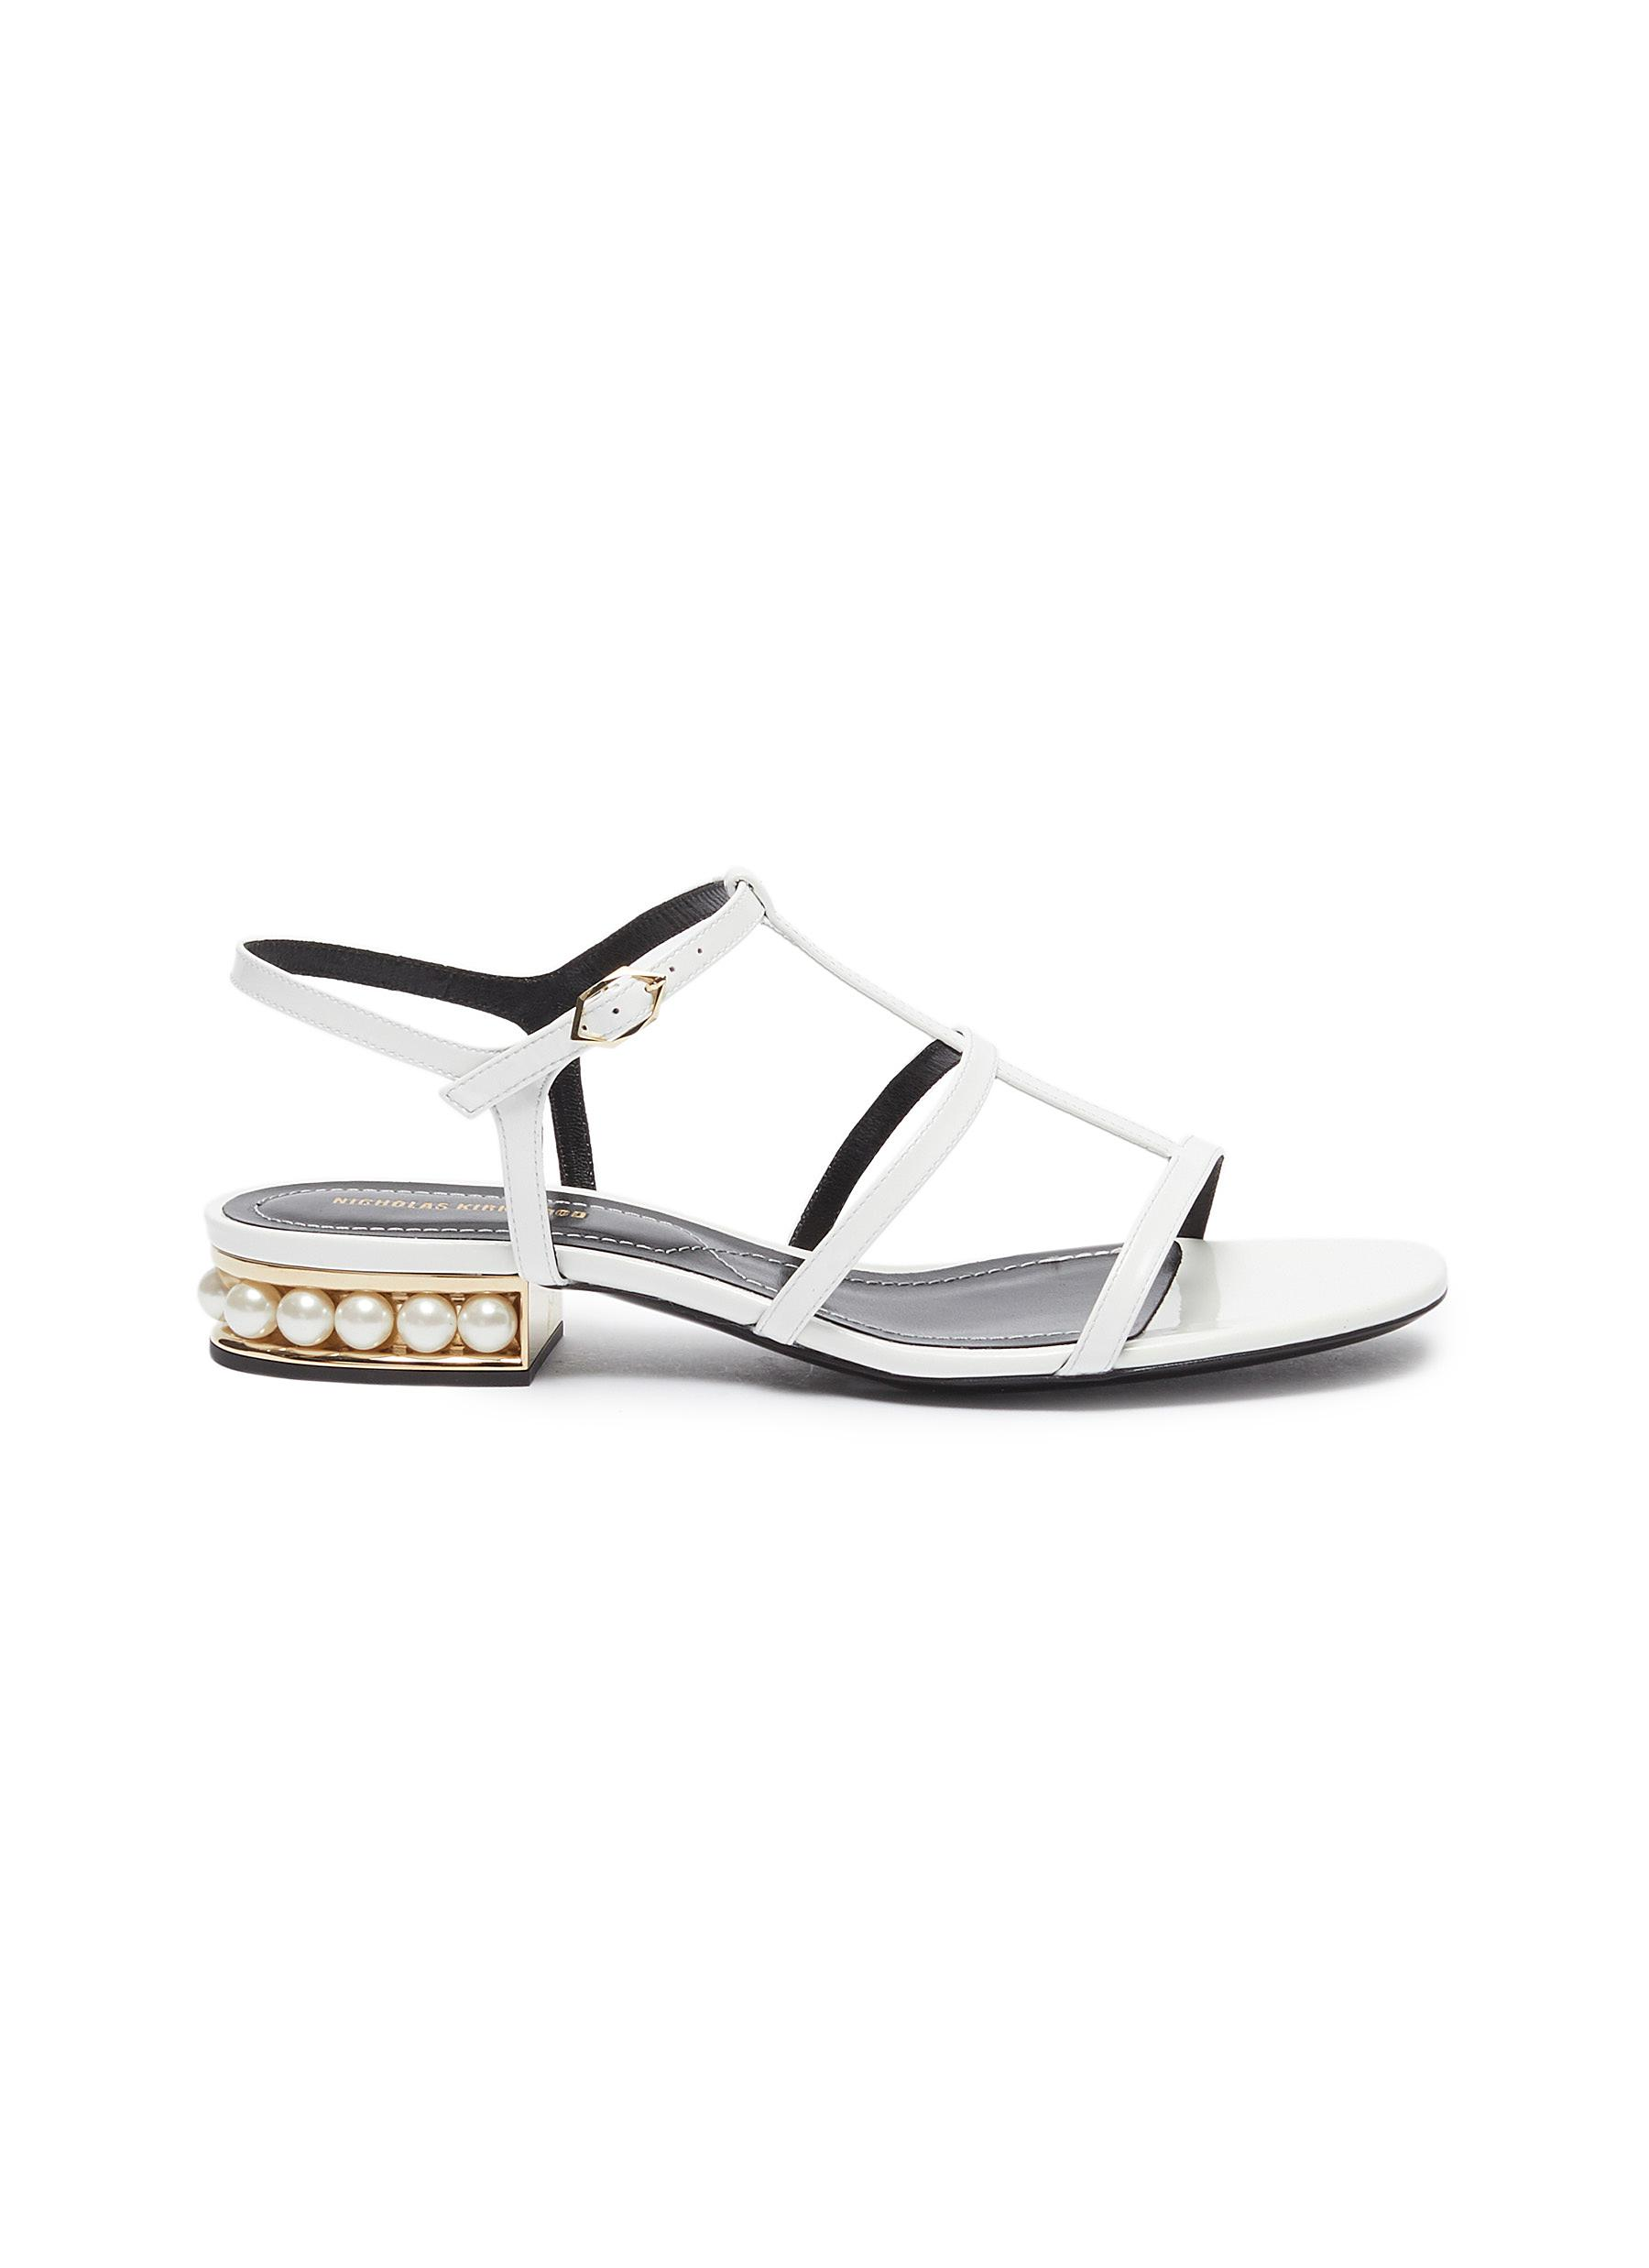 Casati faux pearl heel caged patent leather sandals by Nicholas Kirkwood